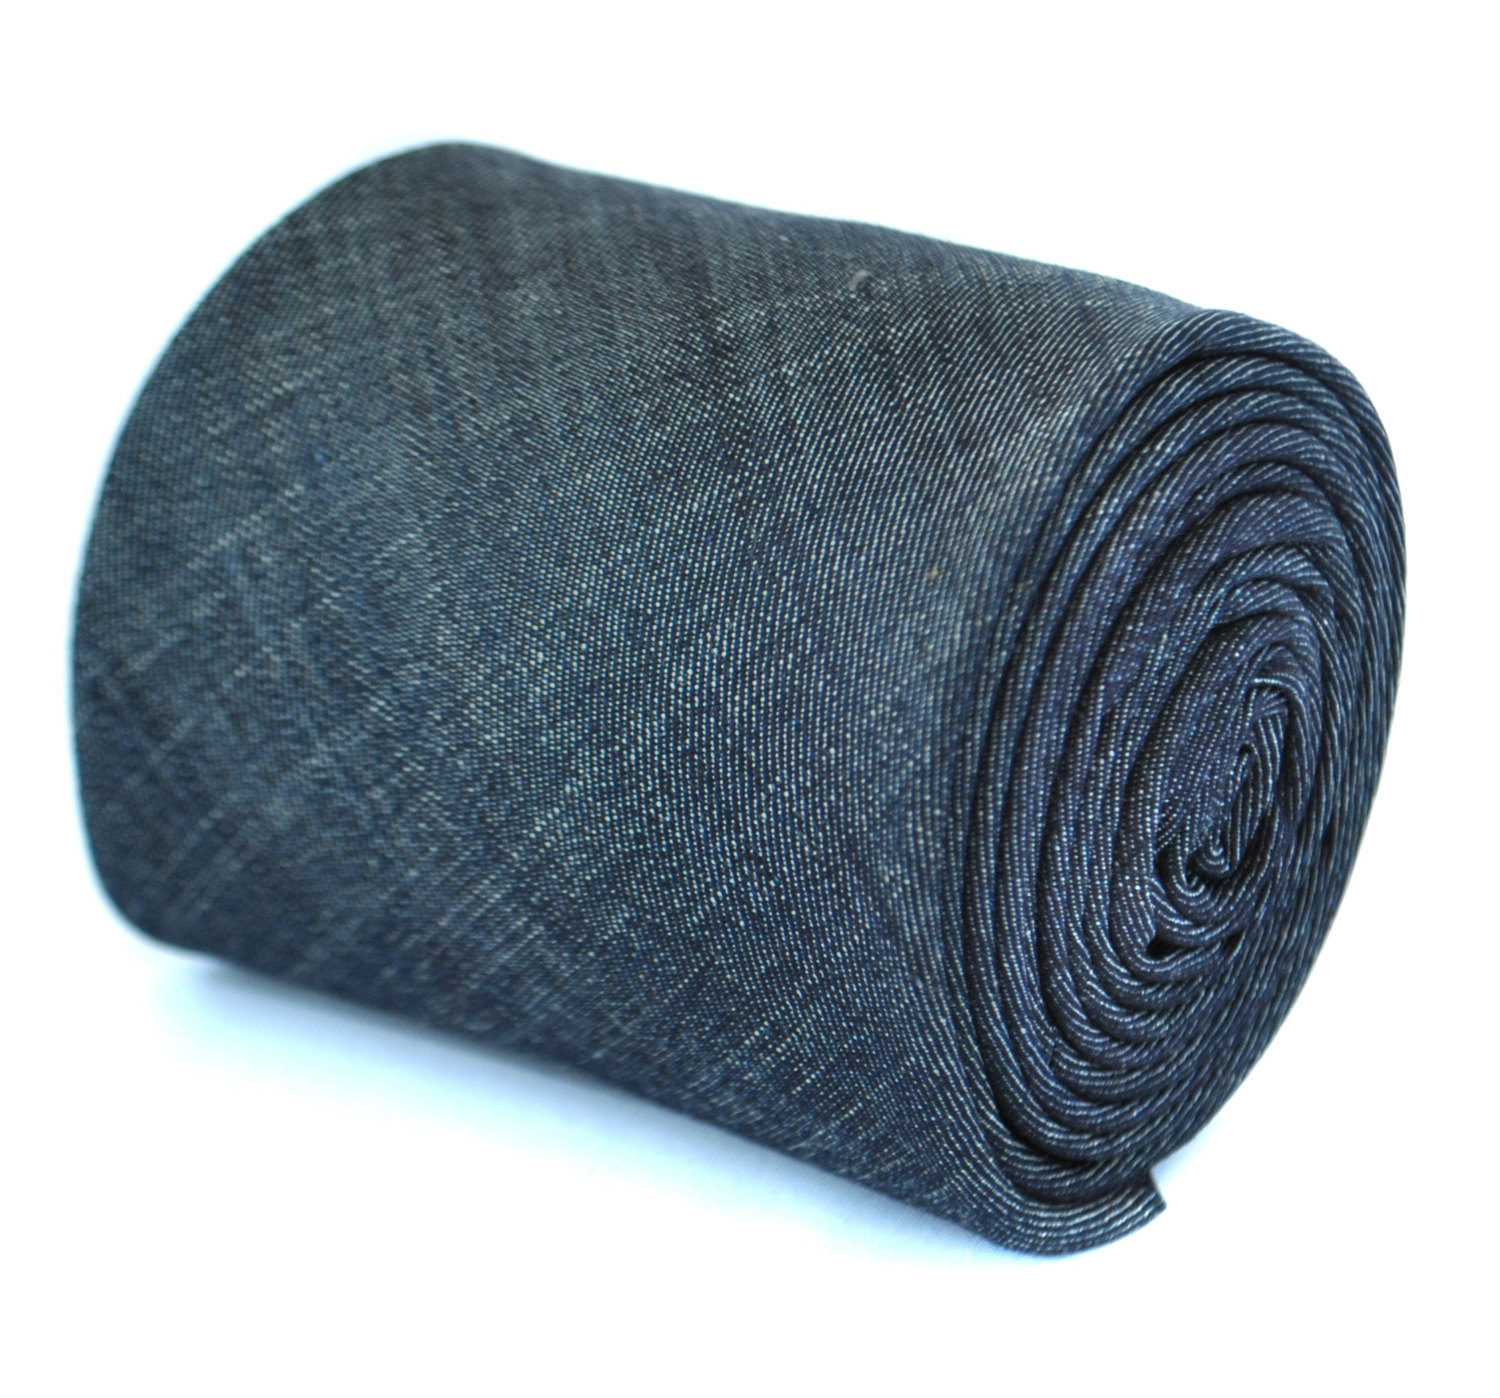 plain navy blue textured linen tie by Frederick Thomas FT1967